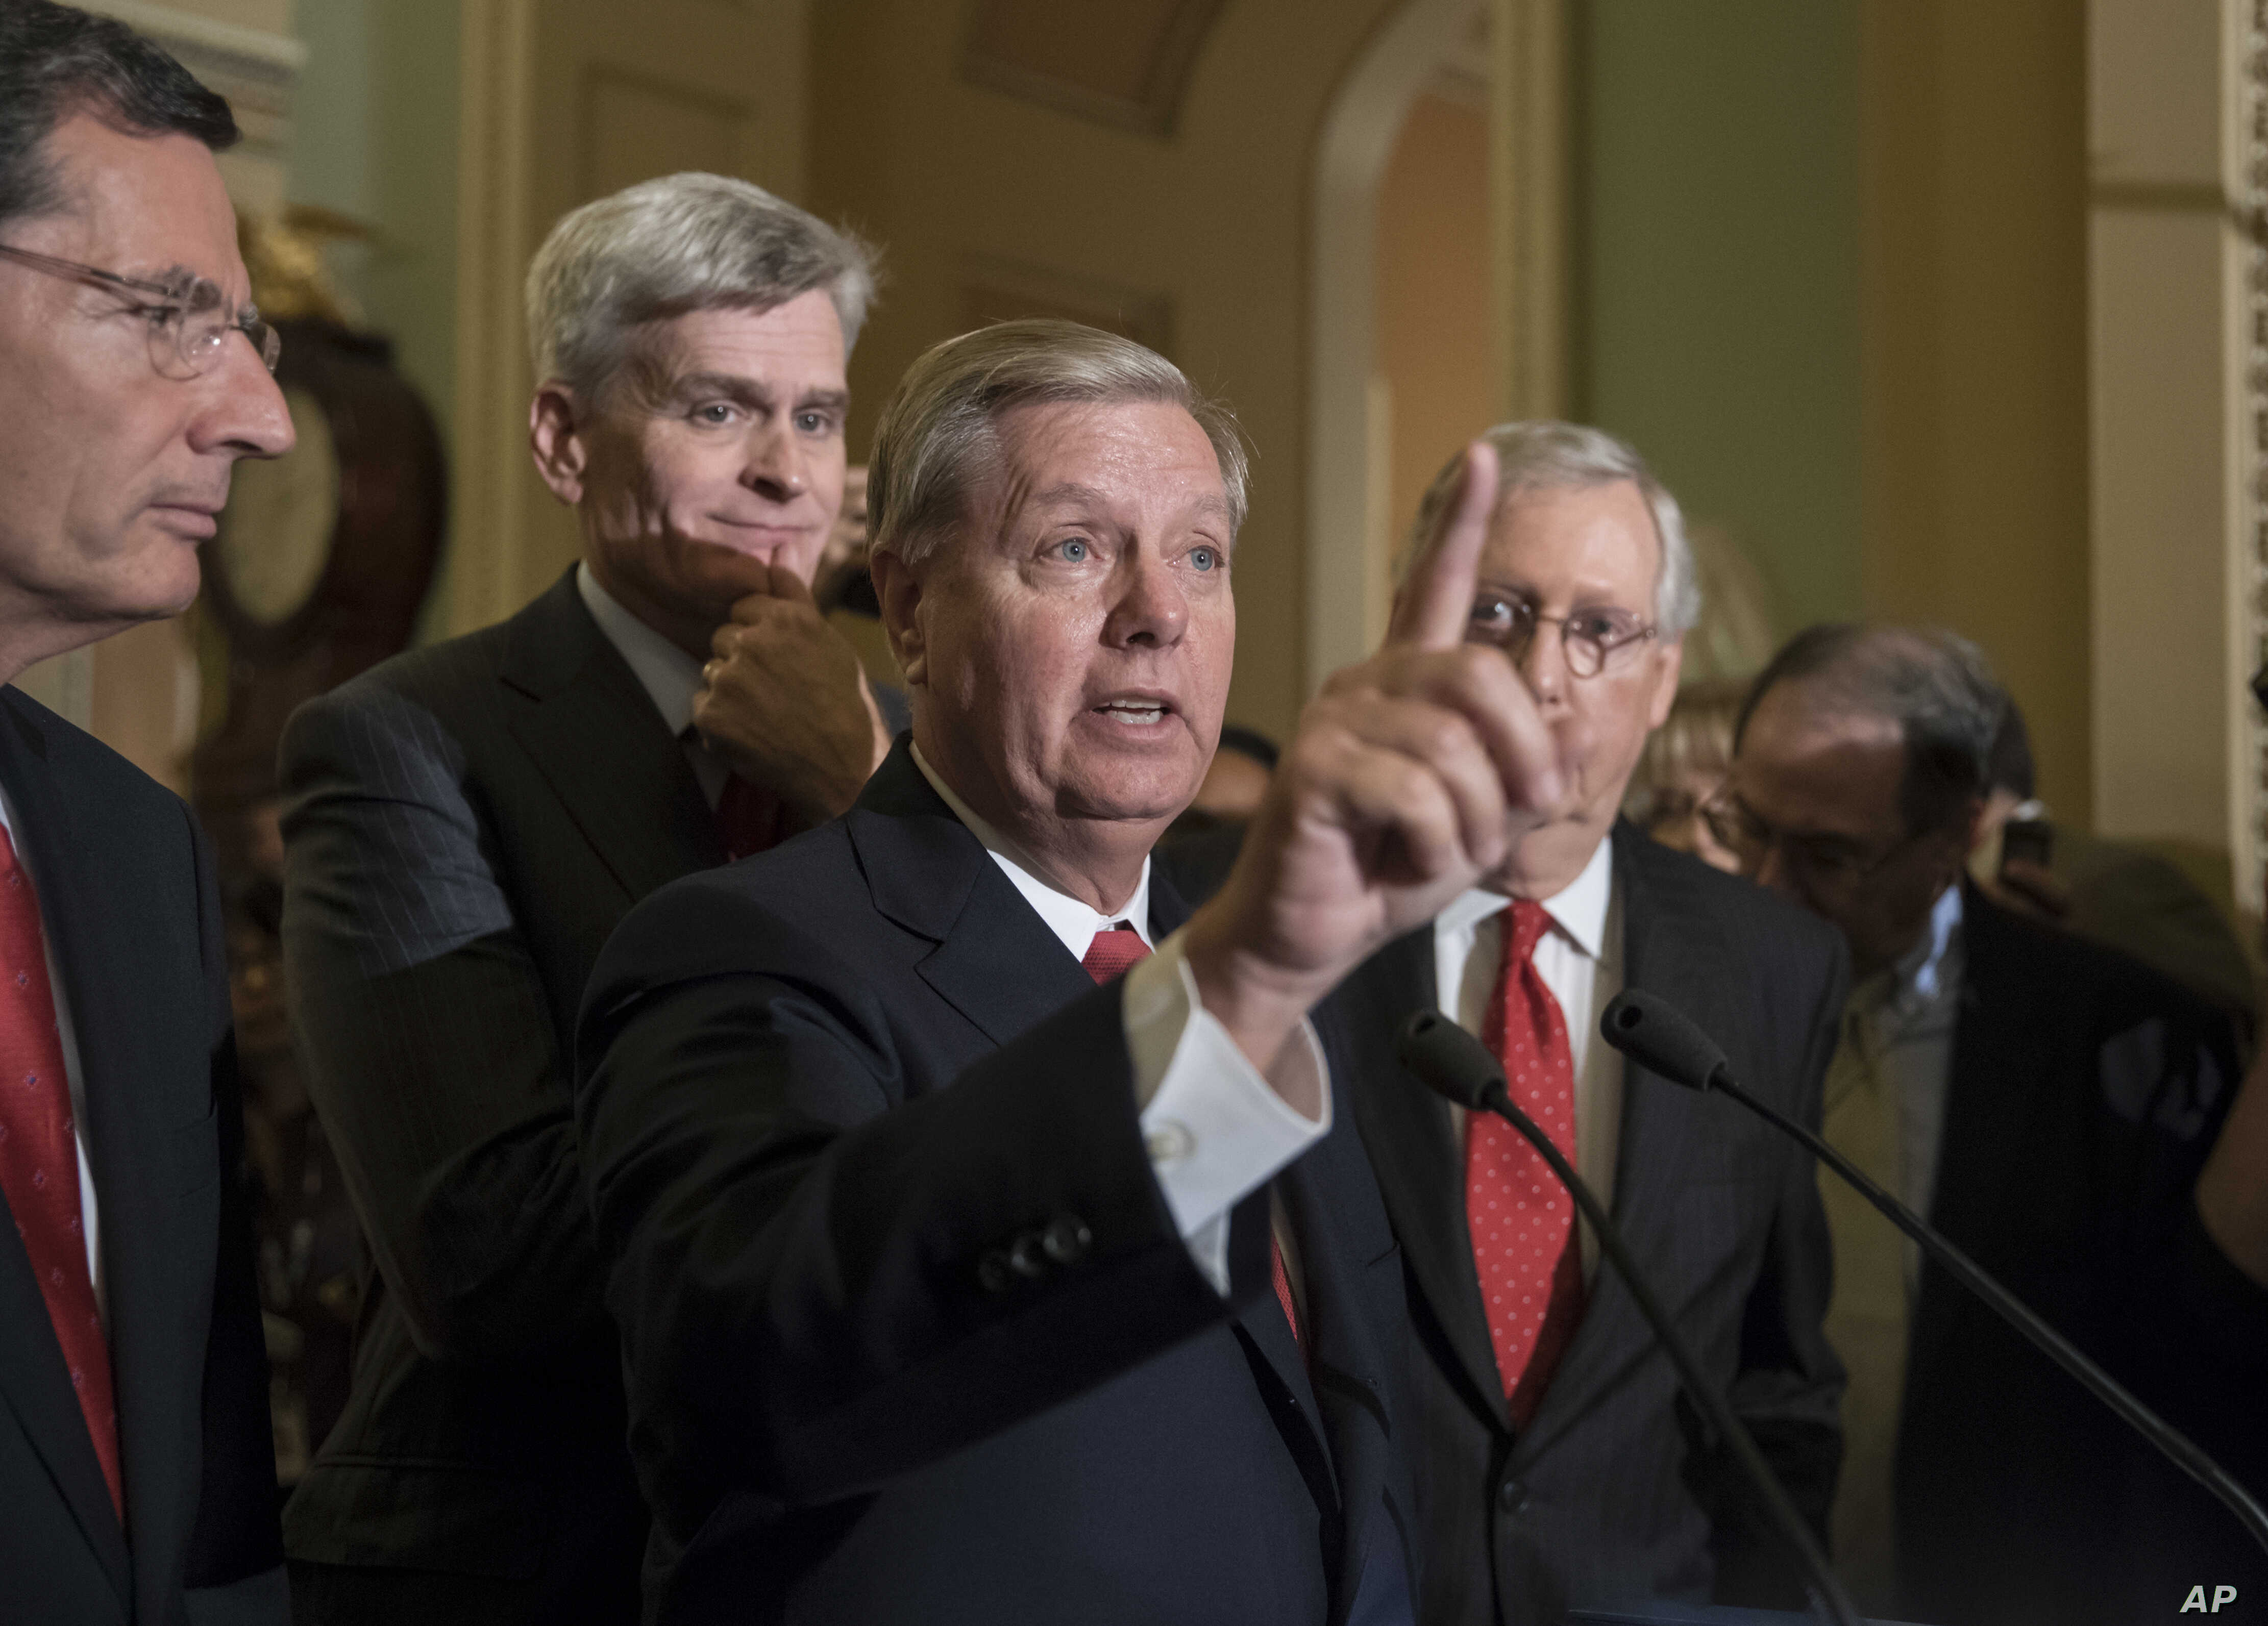 FILE - Sen. Lindsey Graham, R-S.C., joined by, from left, Sen. John Barrasso, R-Wyo., Sen. Bill Cassidy, R-La., and Senate Majority Leader Mitch McConnell, R-Ky., speaks to reporters as they faced assured defeat on the Graham-Cassidy bill, the GOP's ...